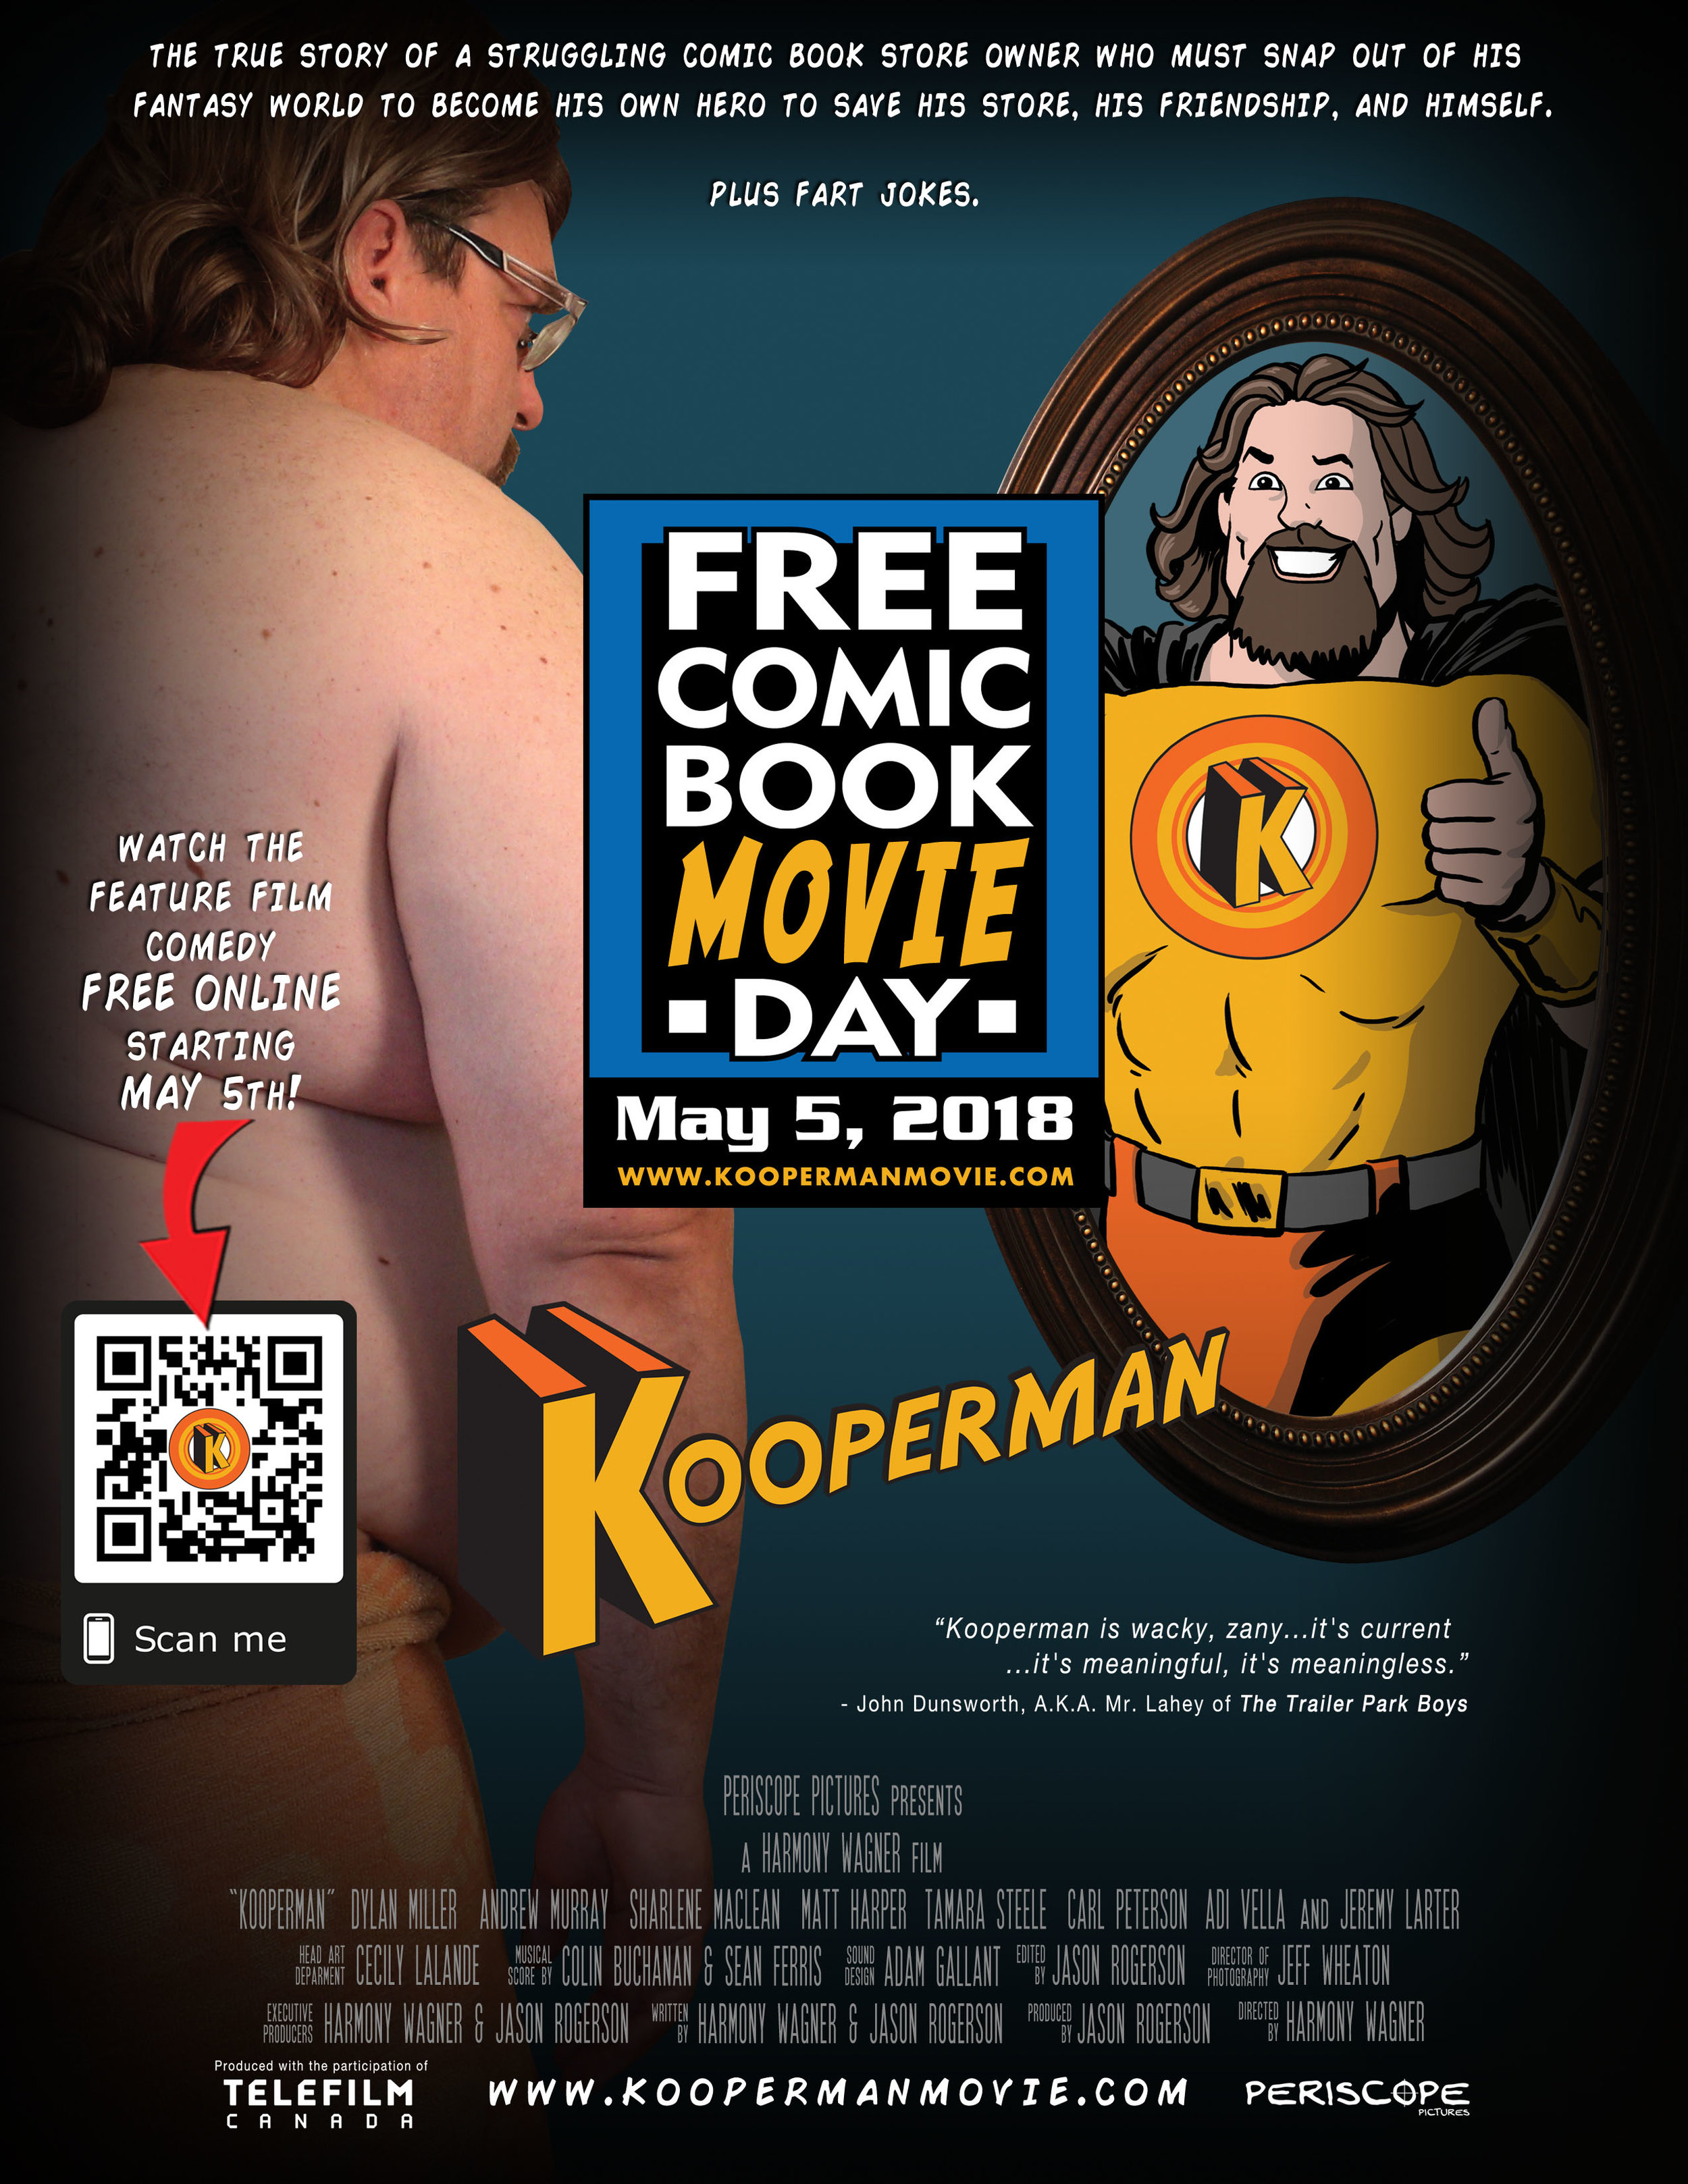 Kooperman_FREE_MOVIE.jpg